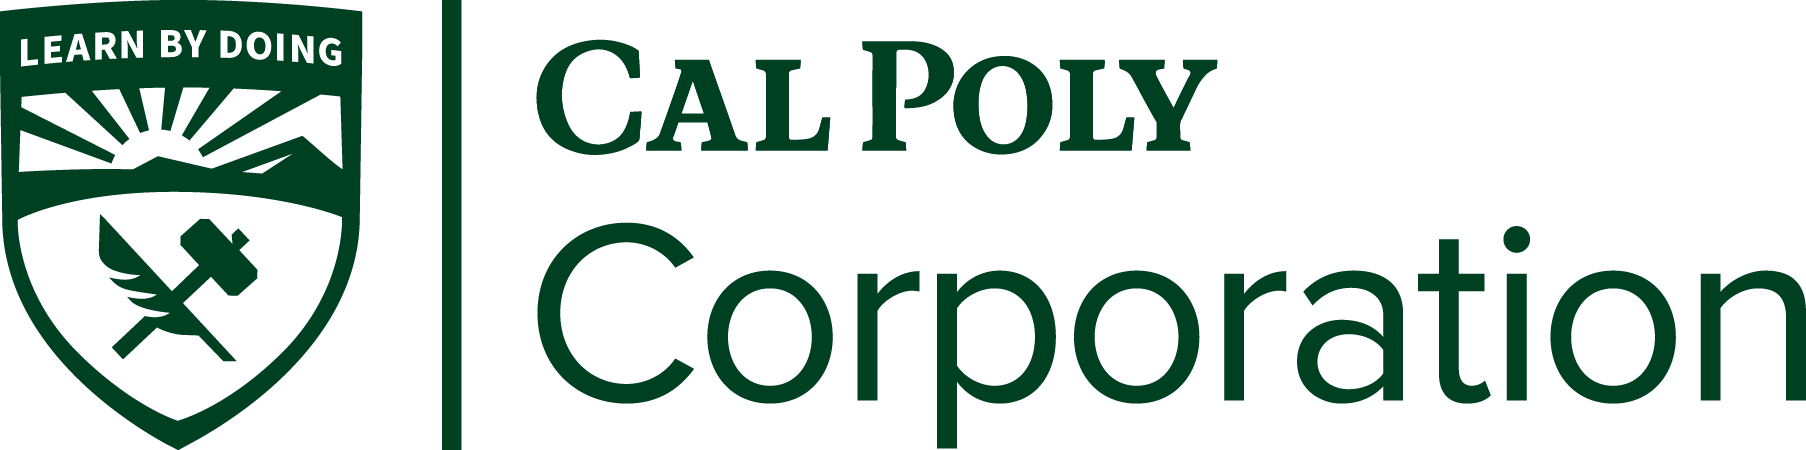 Cal Poly Corporation